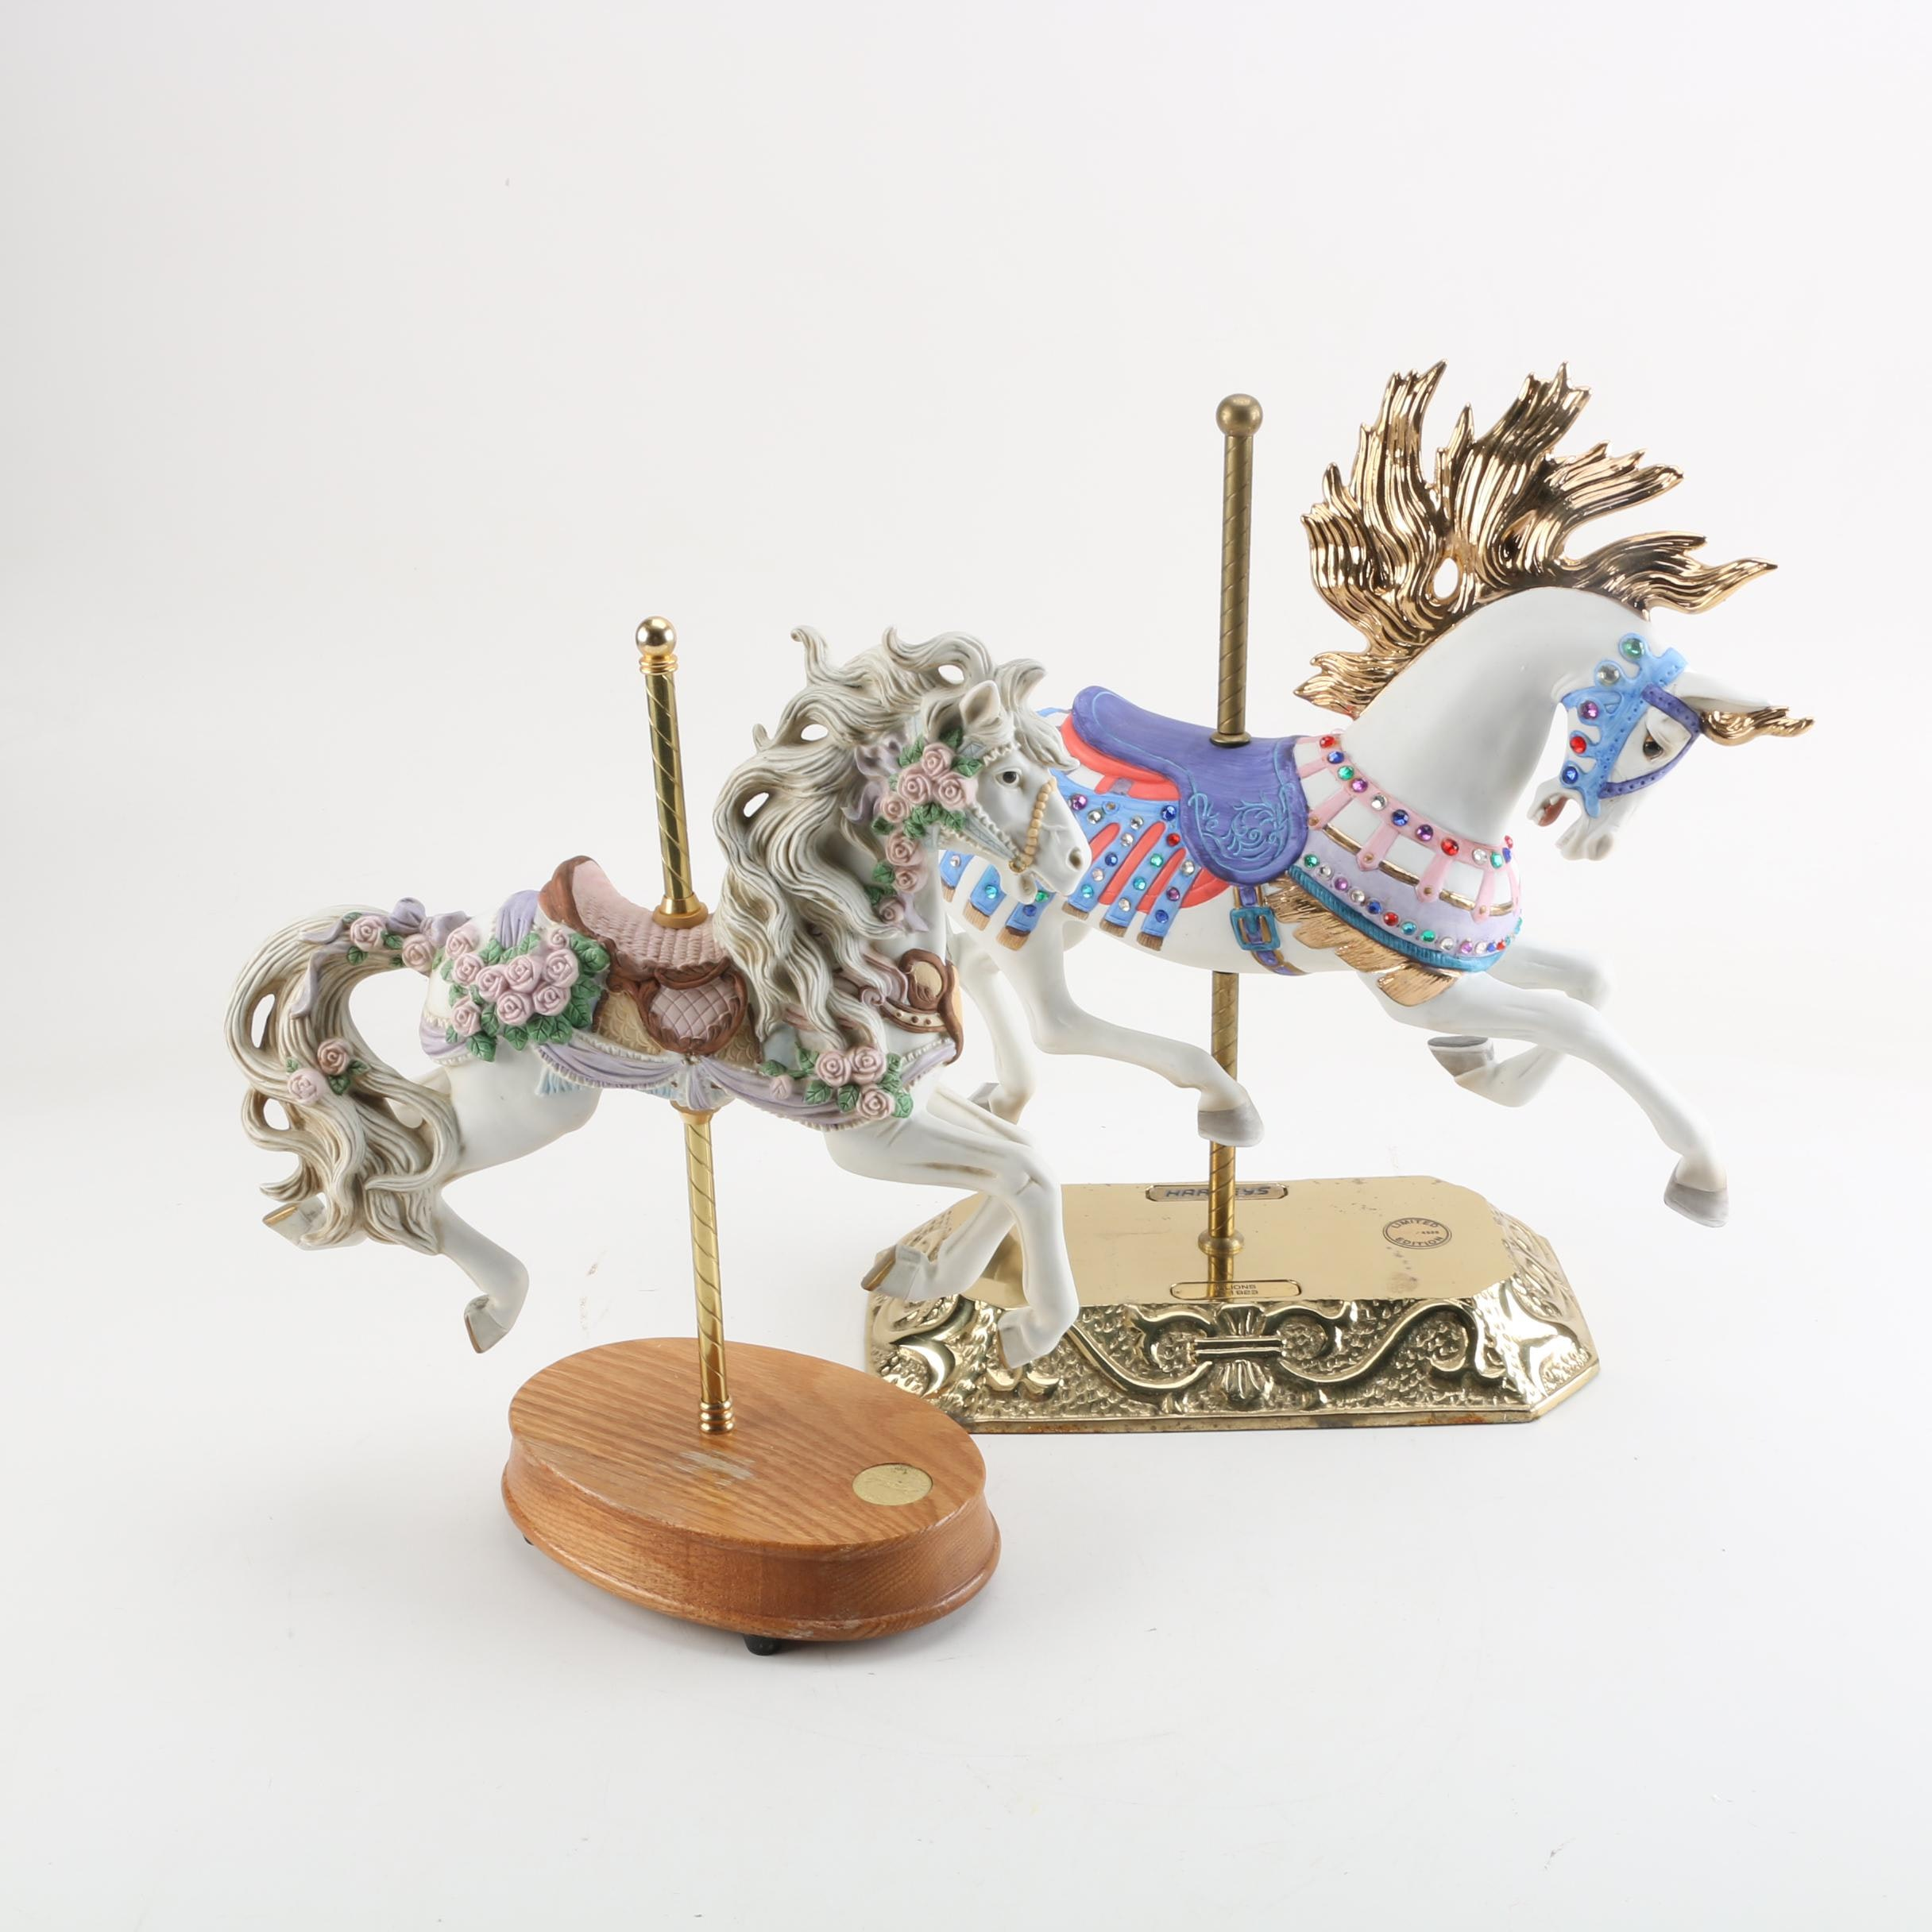 Limited Edition Carousel Horse Figurines Including Harvey's